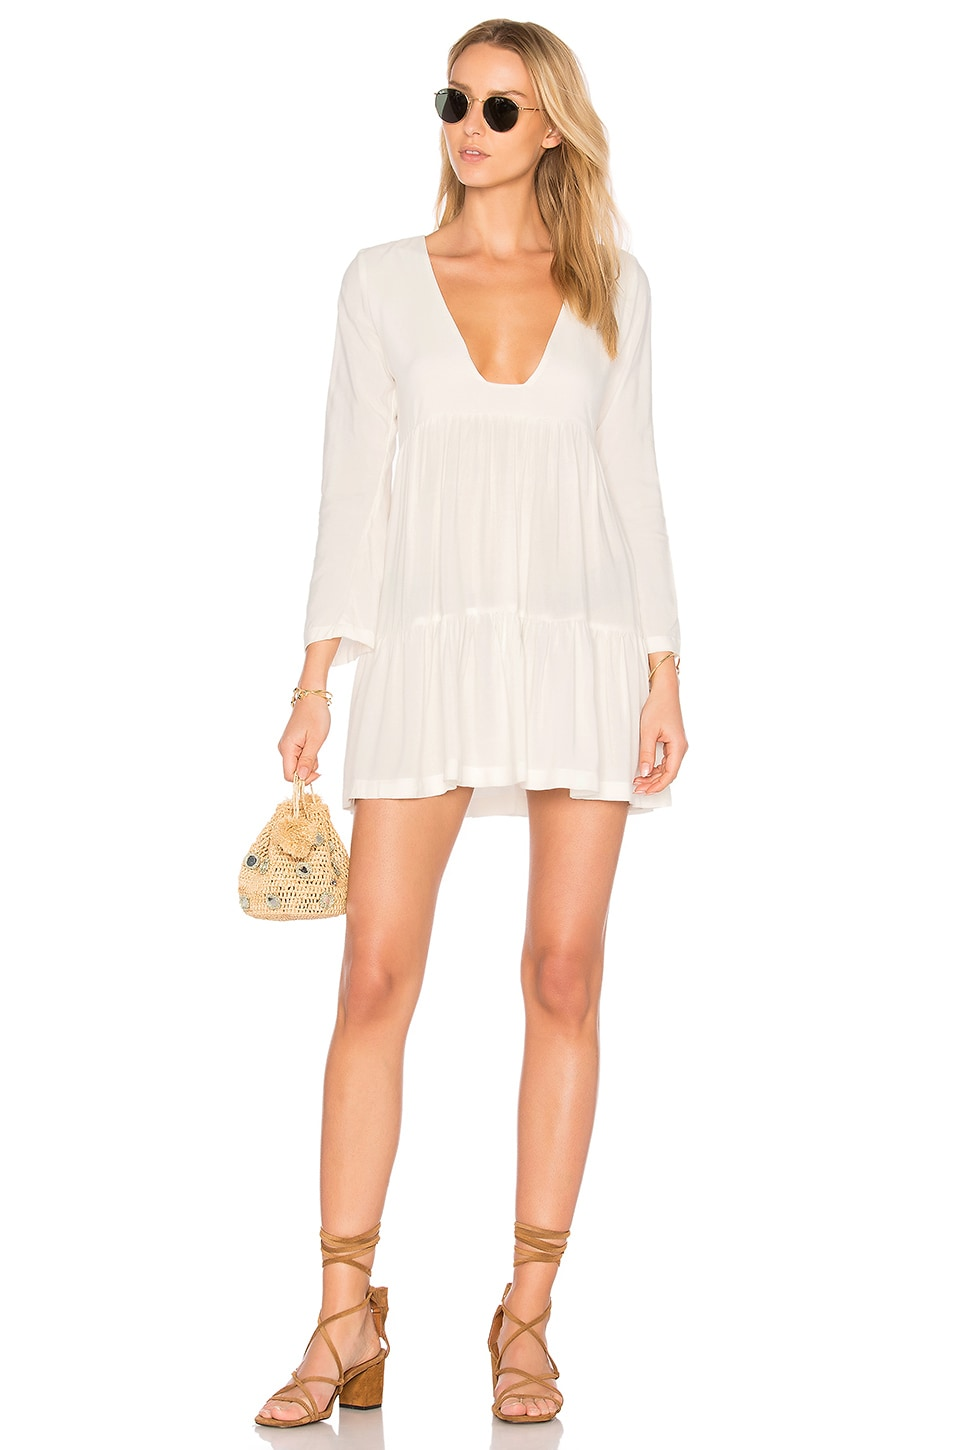 Stillwater Tiered Square Neck Mini Dress in White